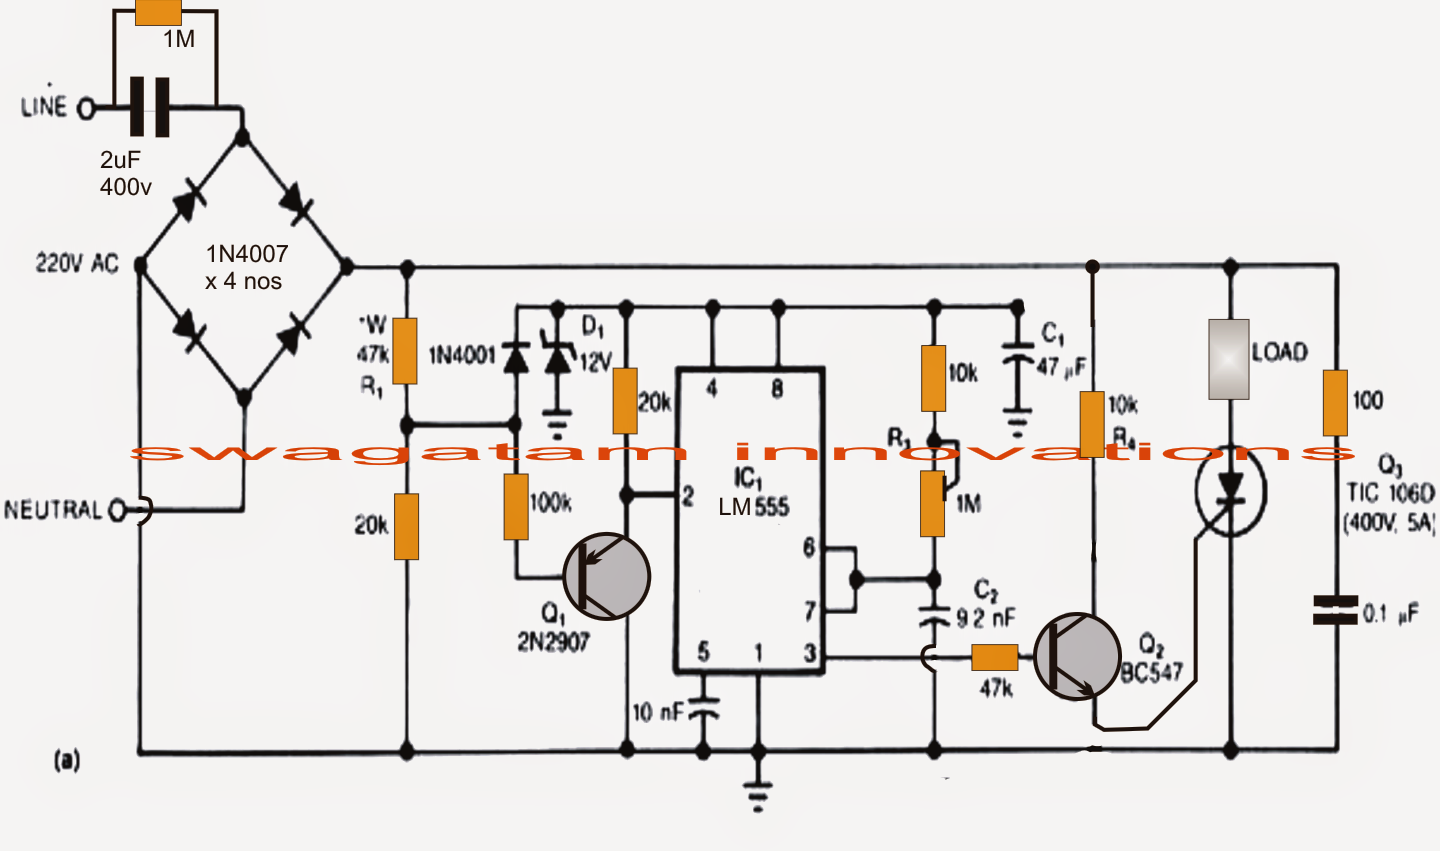 Pin By Km Faisal On A1 Pinterest Power Supply Circuit Ic 555 Diagram A Simple Yet Smart Solution Is Implemented Here Using In Its Monostable Mode To Control Rush Surge Transfomerless Via Zero